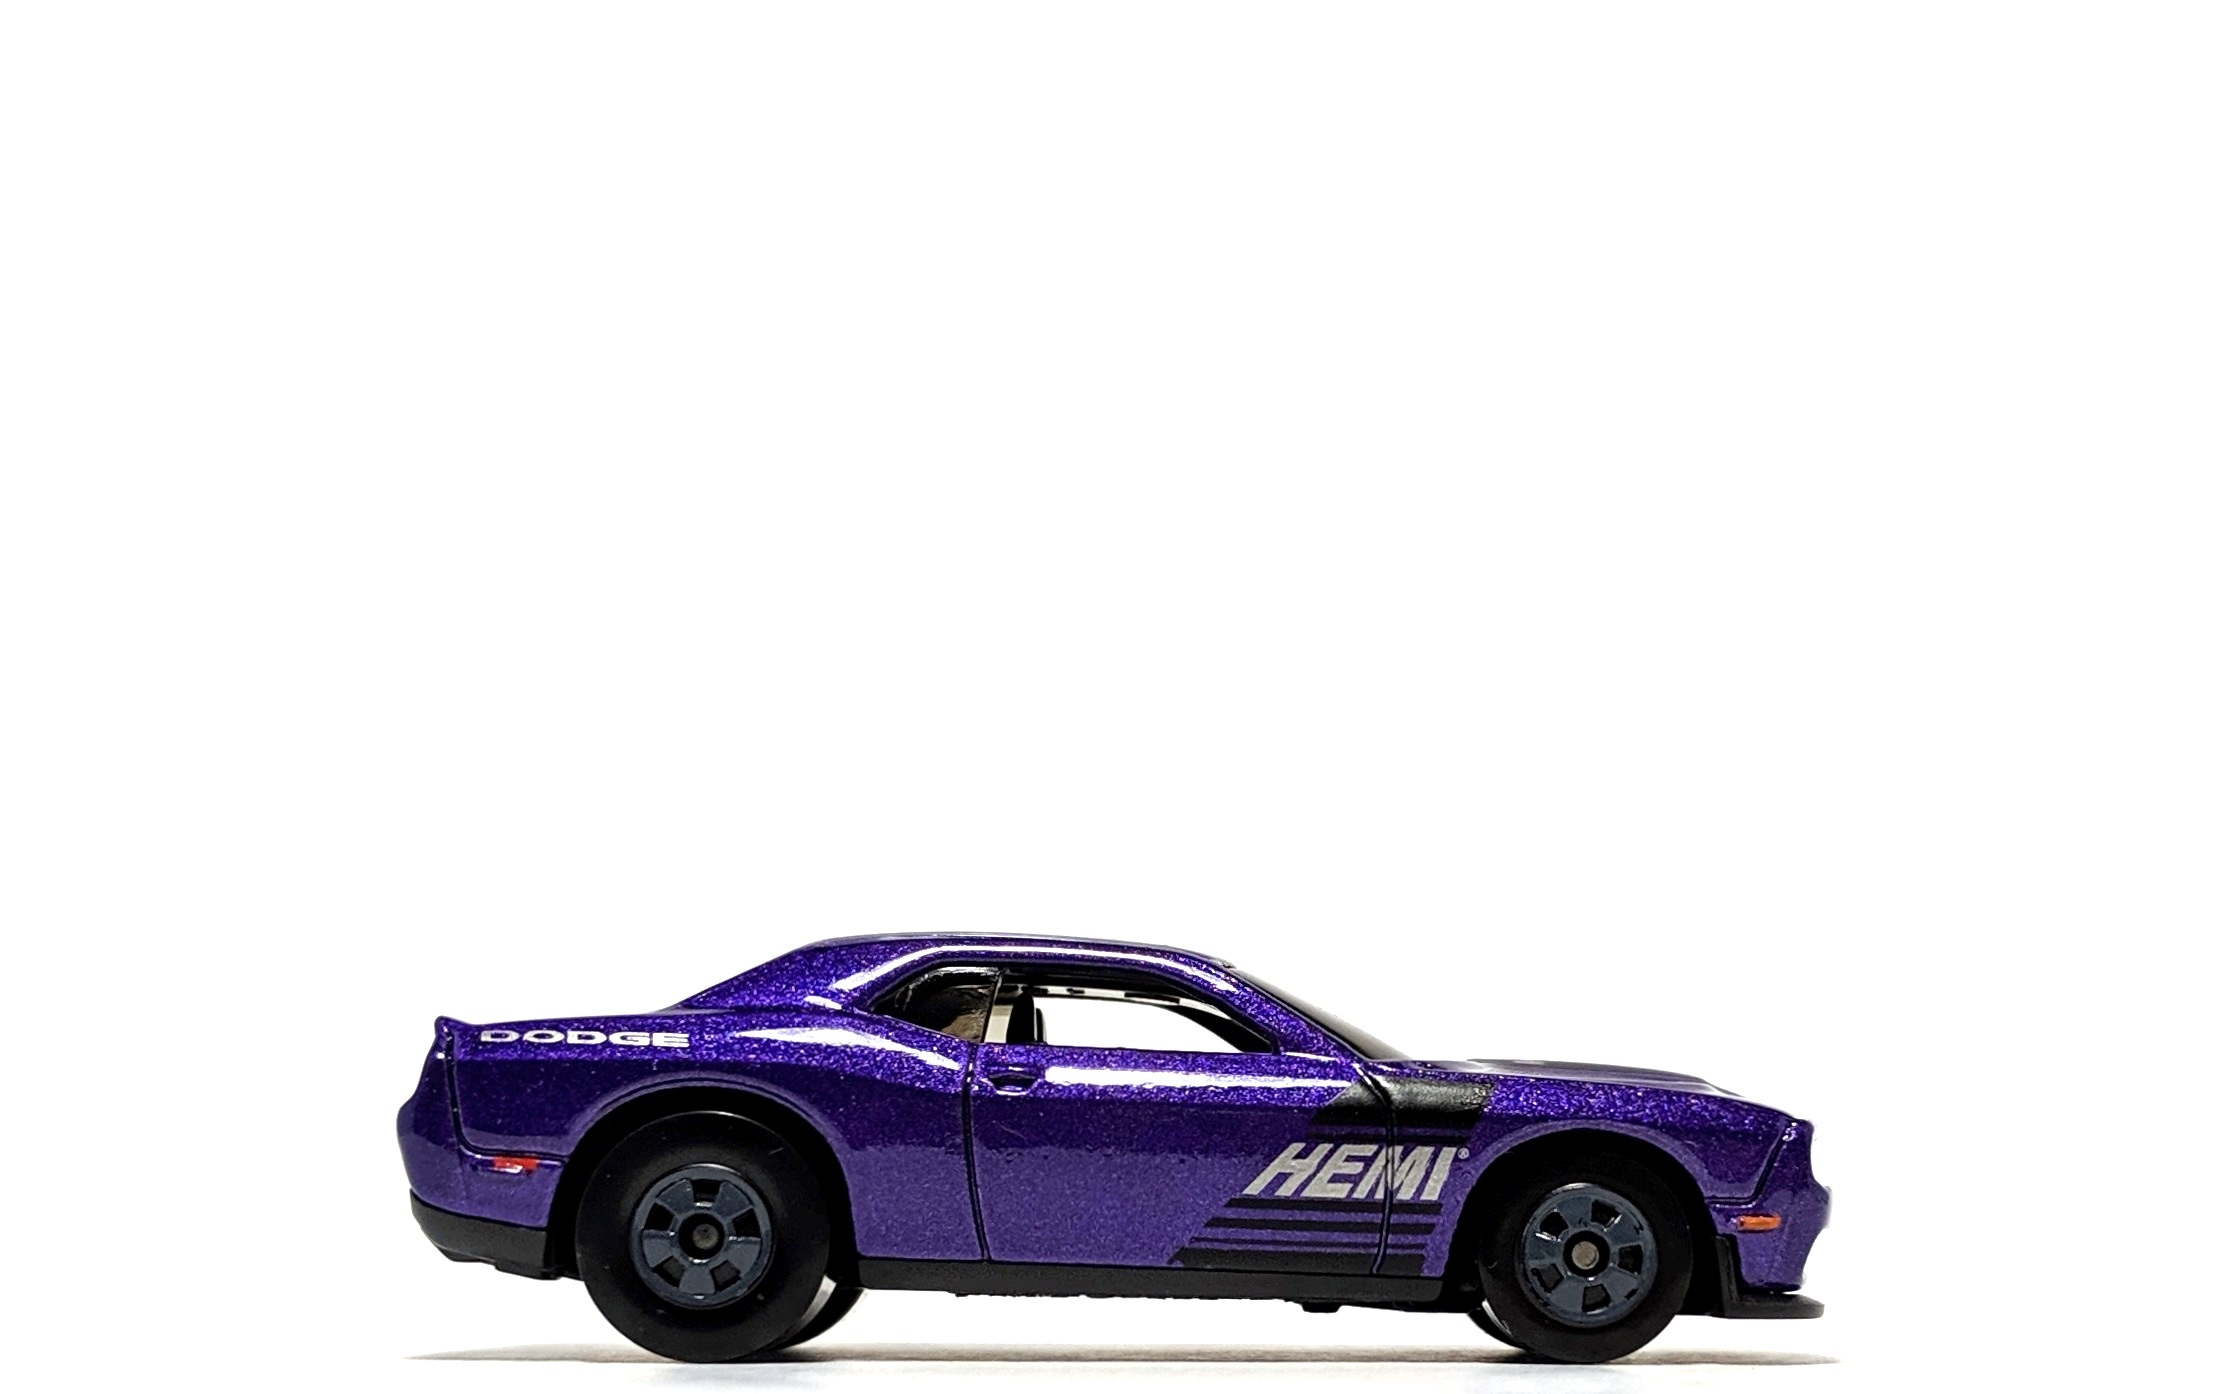 '15 Dodge Challenger SRT, by Hot Wheels (Target-exclusive Retro Series)